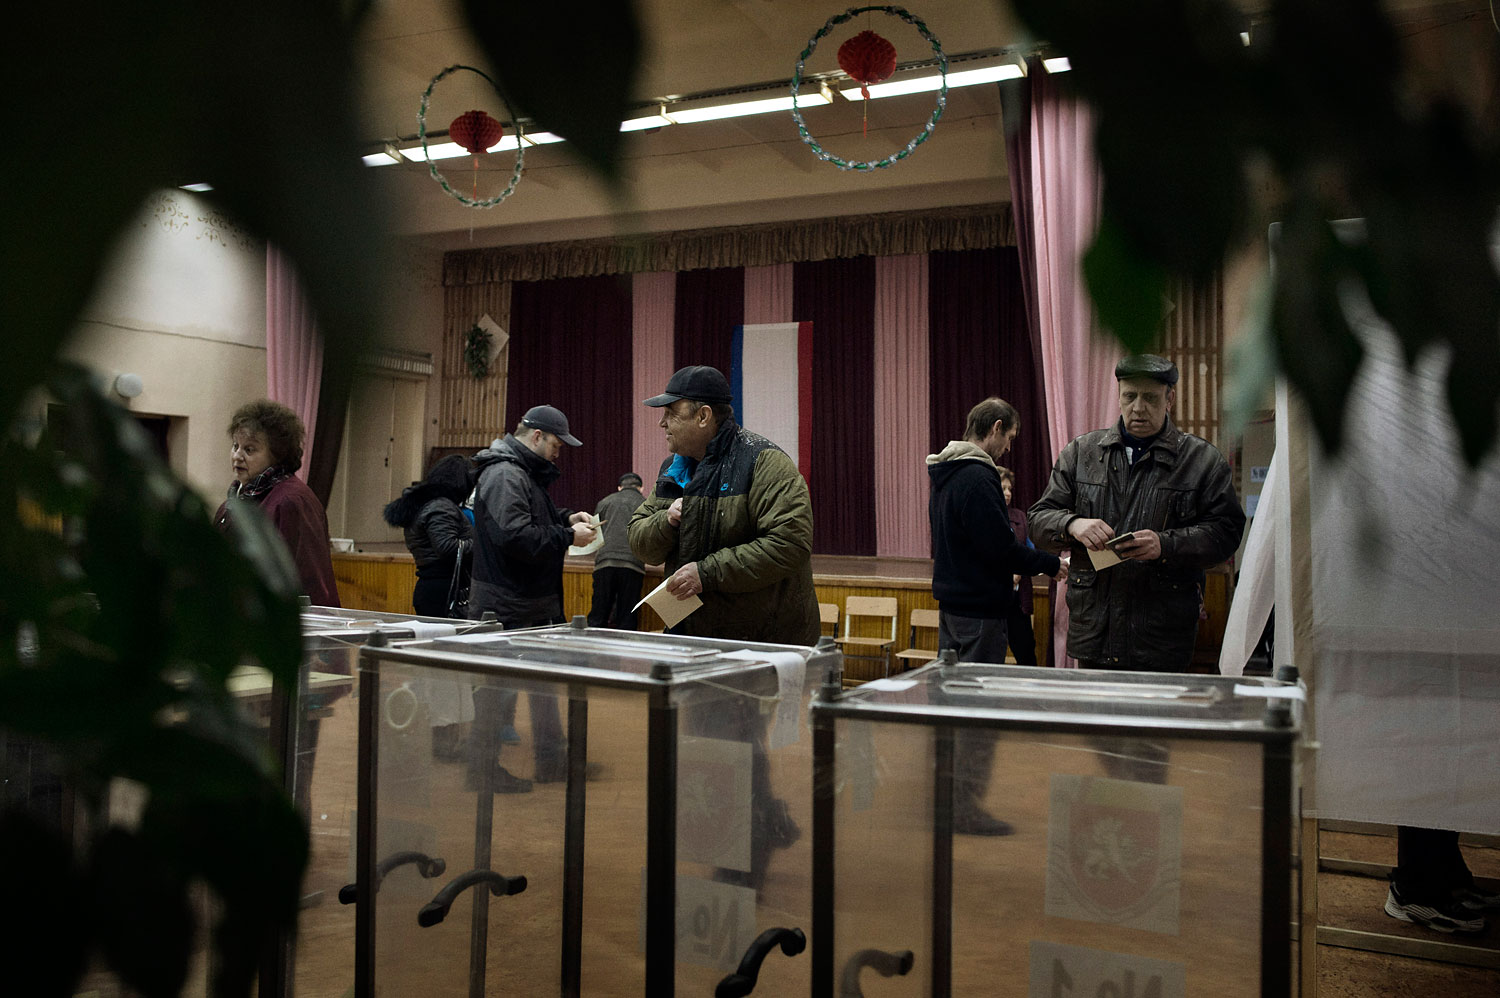 Residents of Crimea vote in a referendum on their region's secession from Ukraine and annexation into Russia on March 16, 2014.